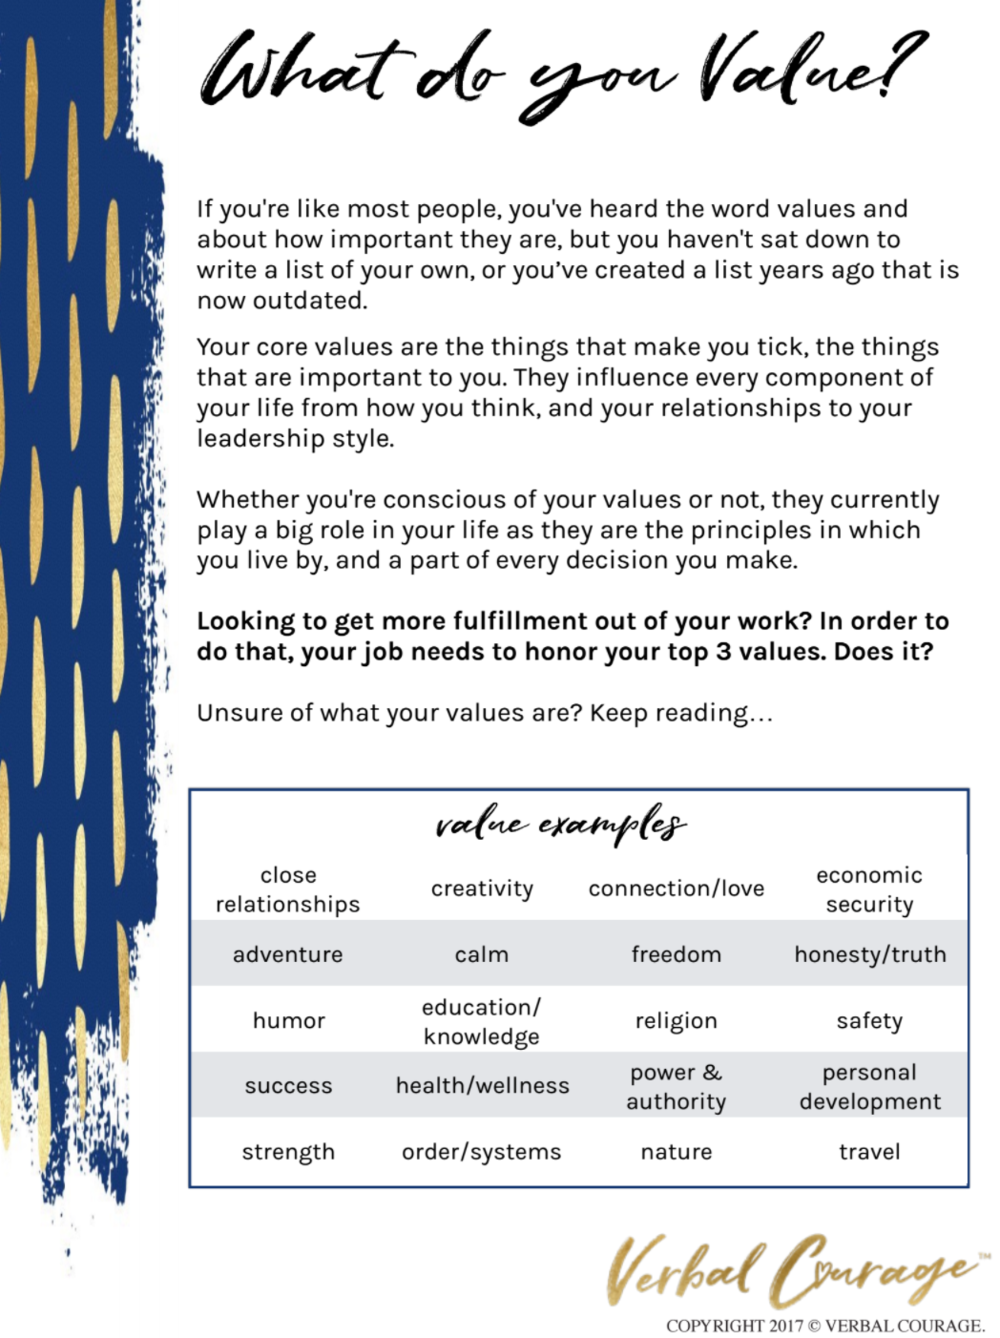 YOUR VALUES - BRING THEM INTO FOCUS